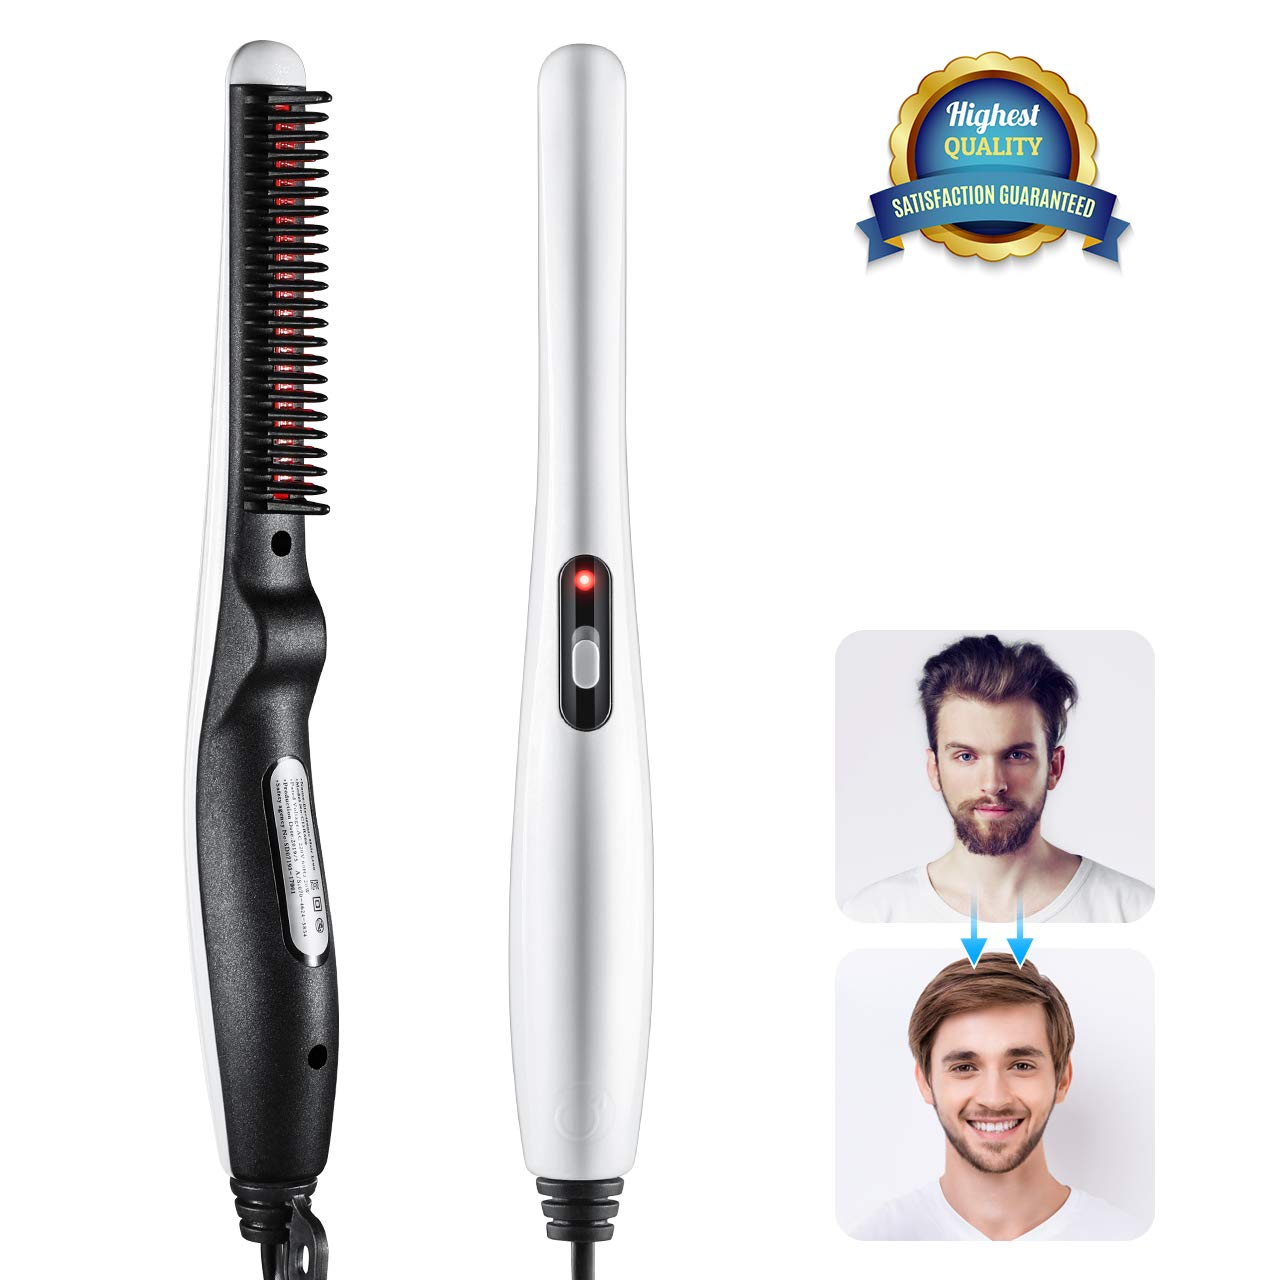 Beard and Hair Straightening Brush, LARMHOI Electric Comb for Men with Side Hair Detangling, Curly Hair Straightening for Beard Style, Hair Style, Women Short Hair Straightening by LARMHOI